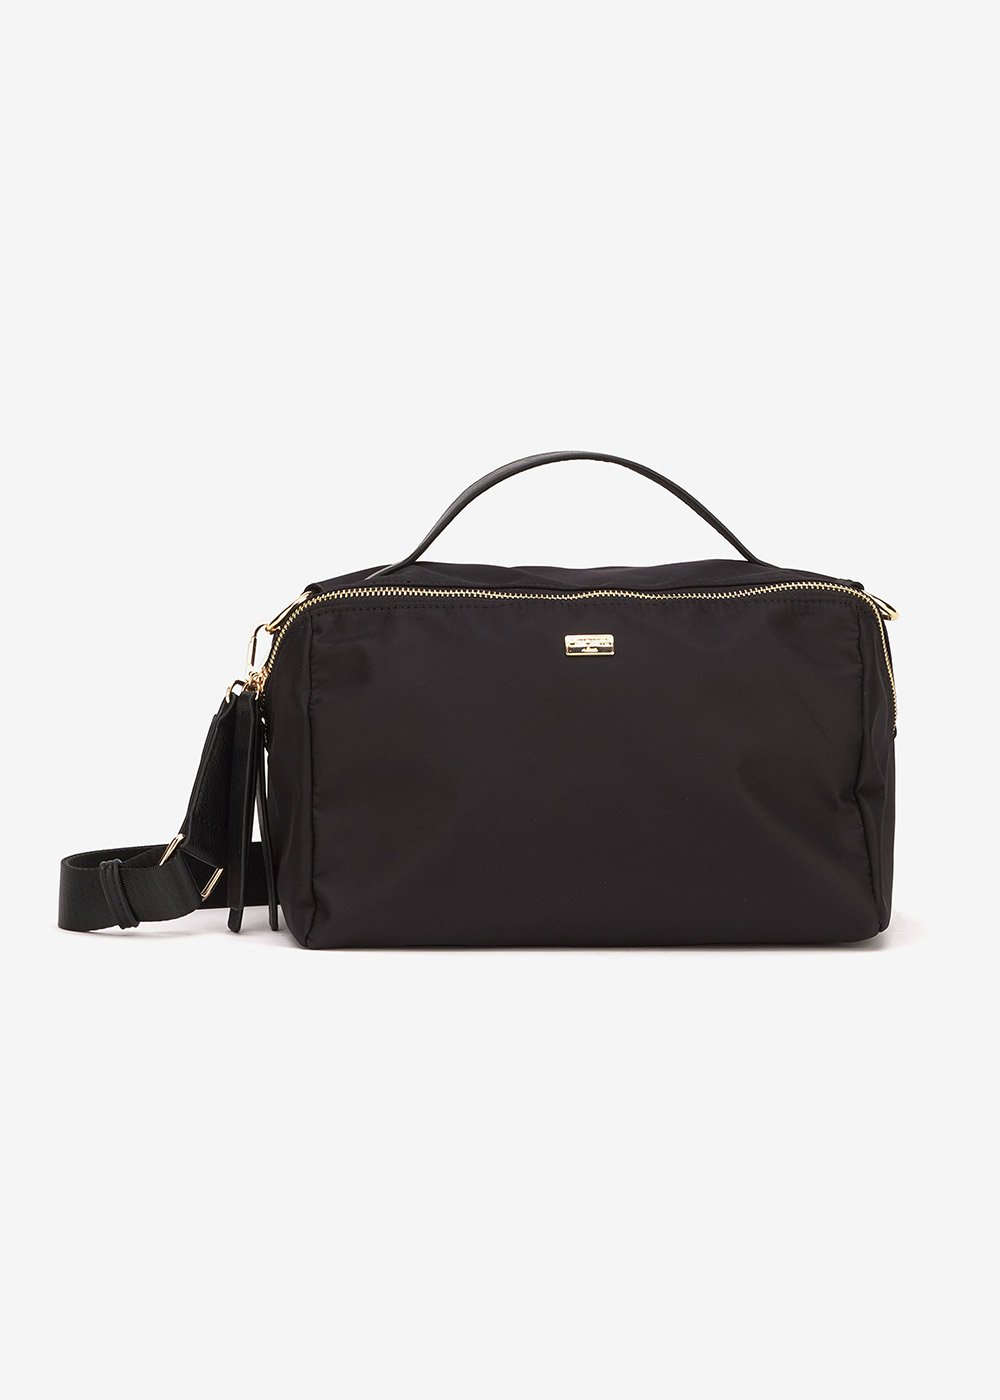 Blanc Boston bag in technical fabric - Black - Woman